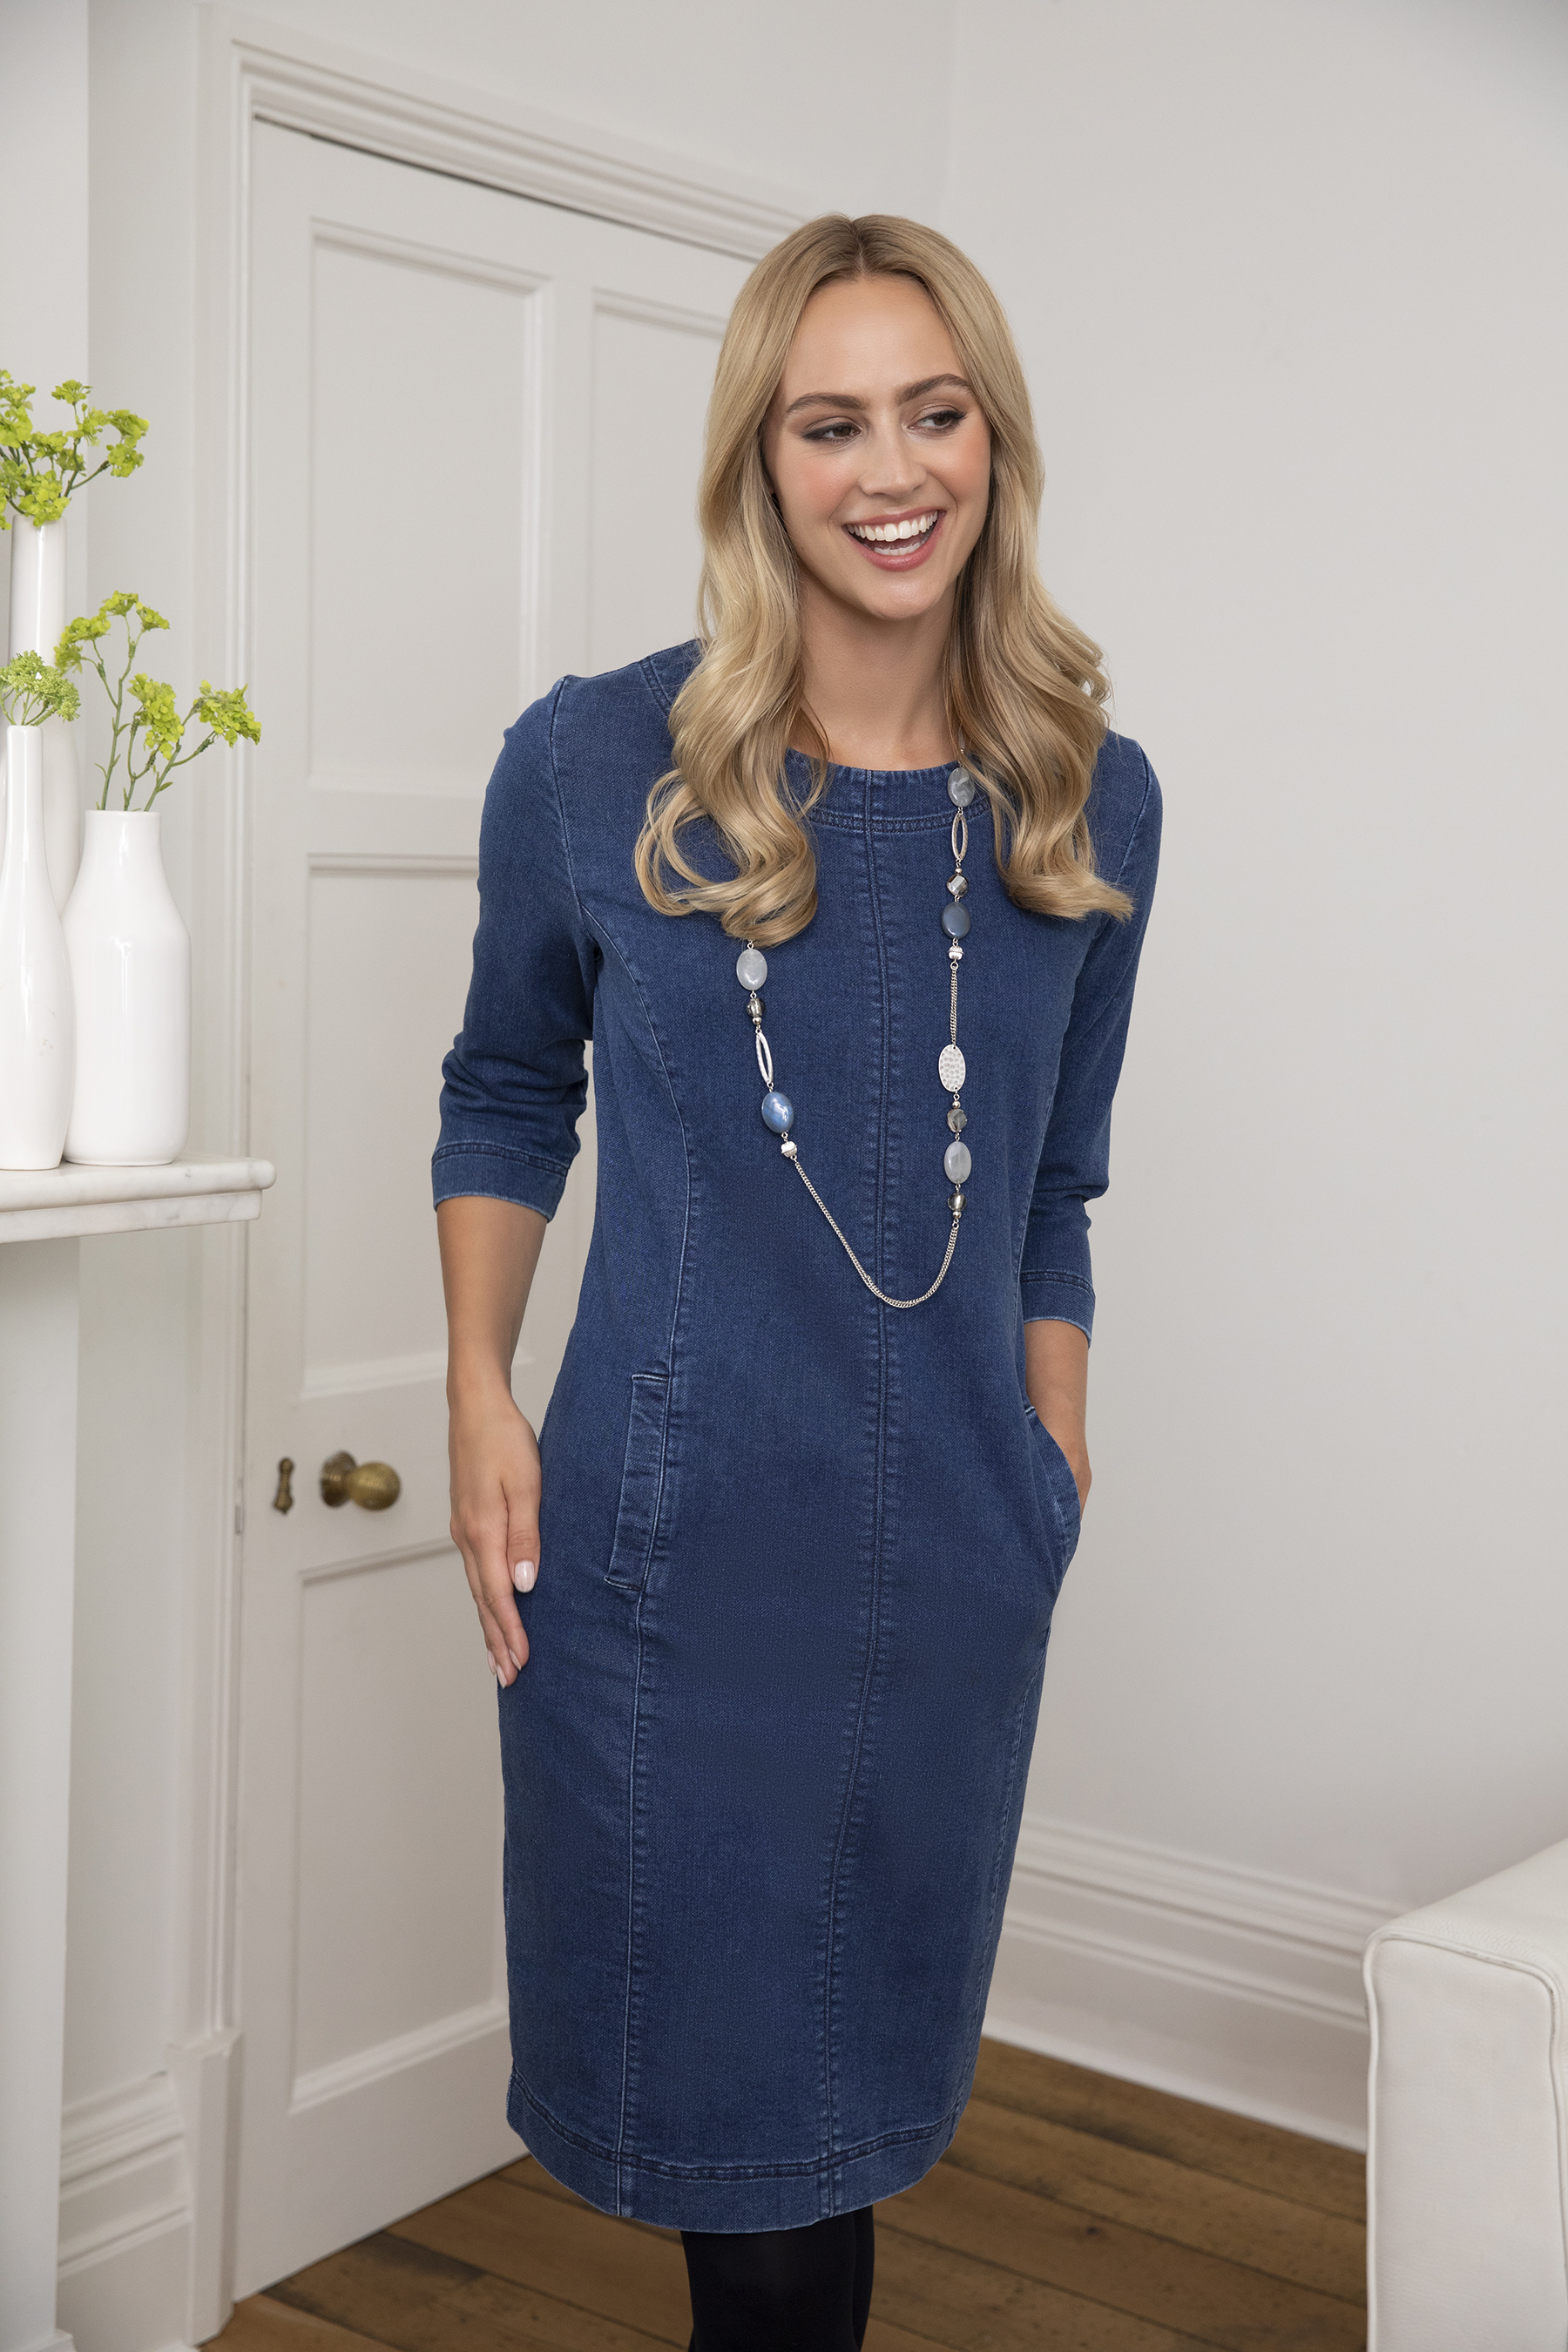 Autumn Walks Collection - The Denim Dress